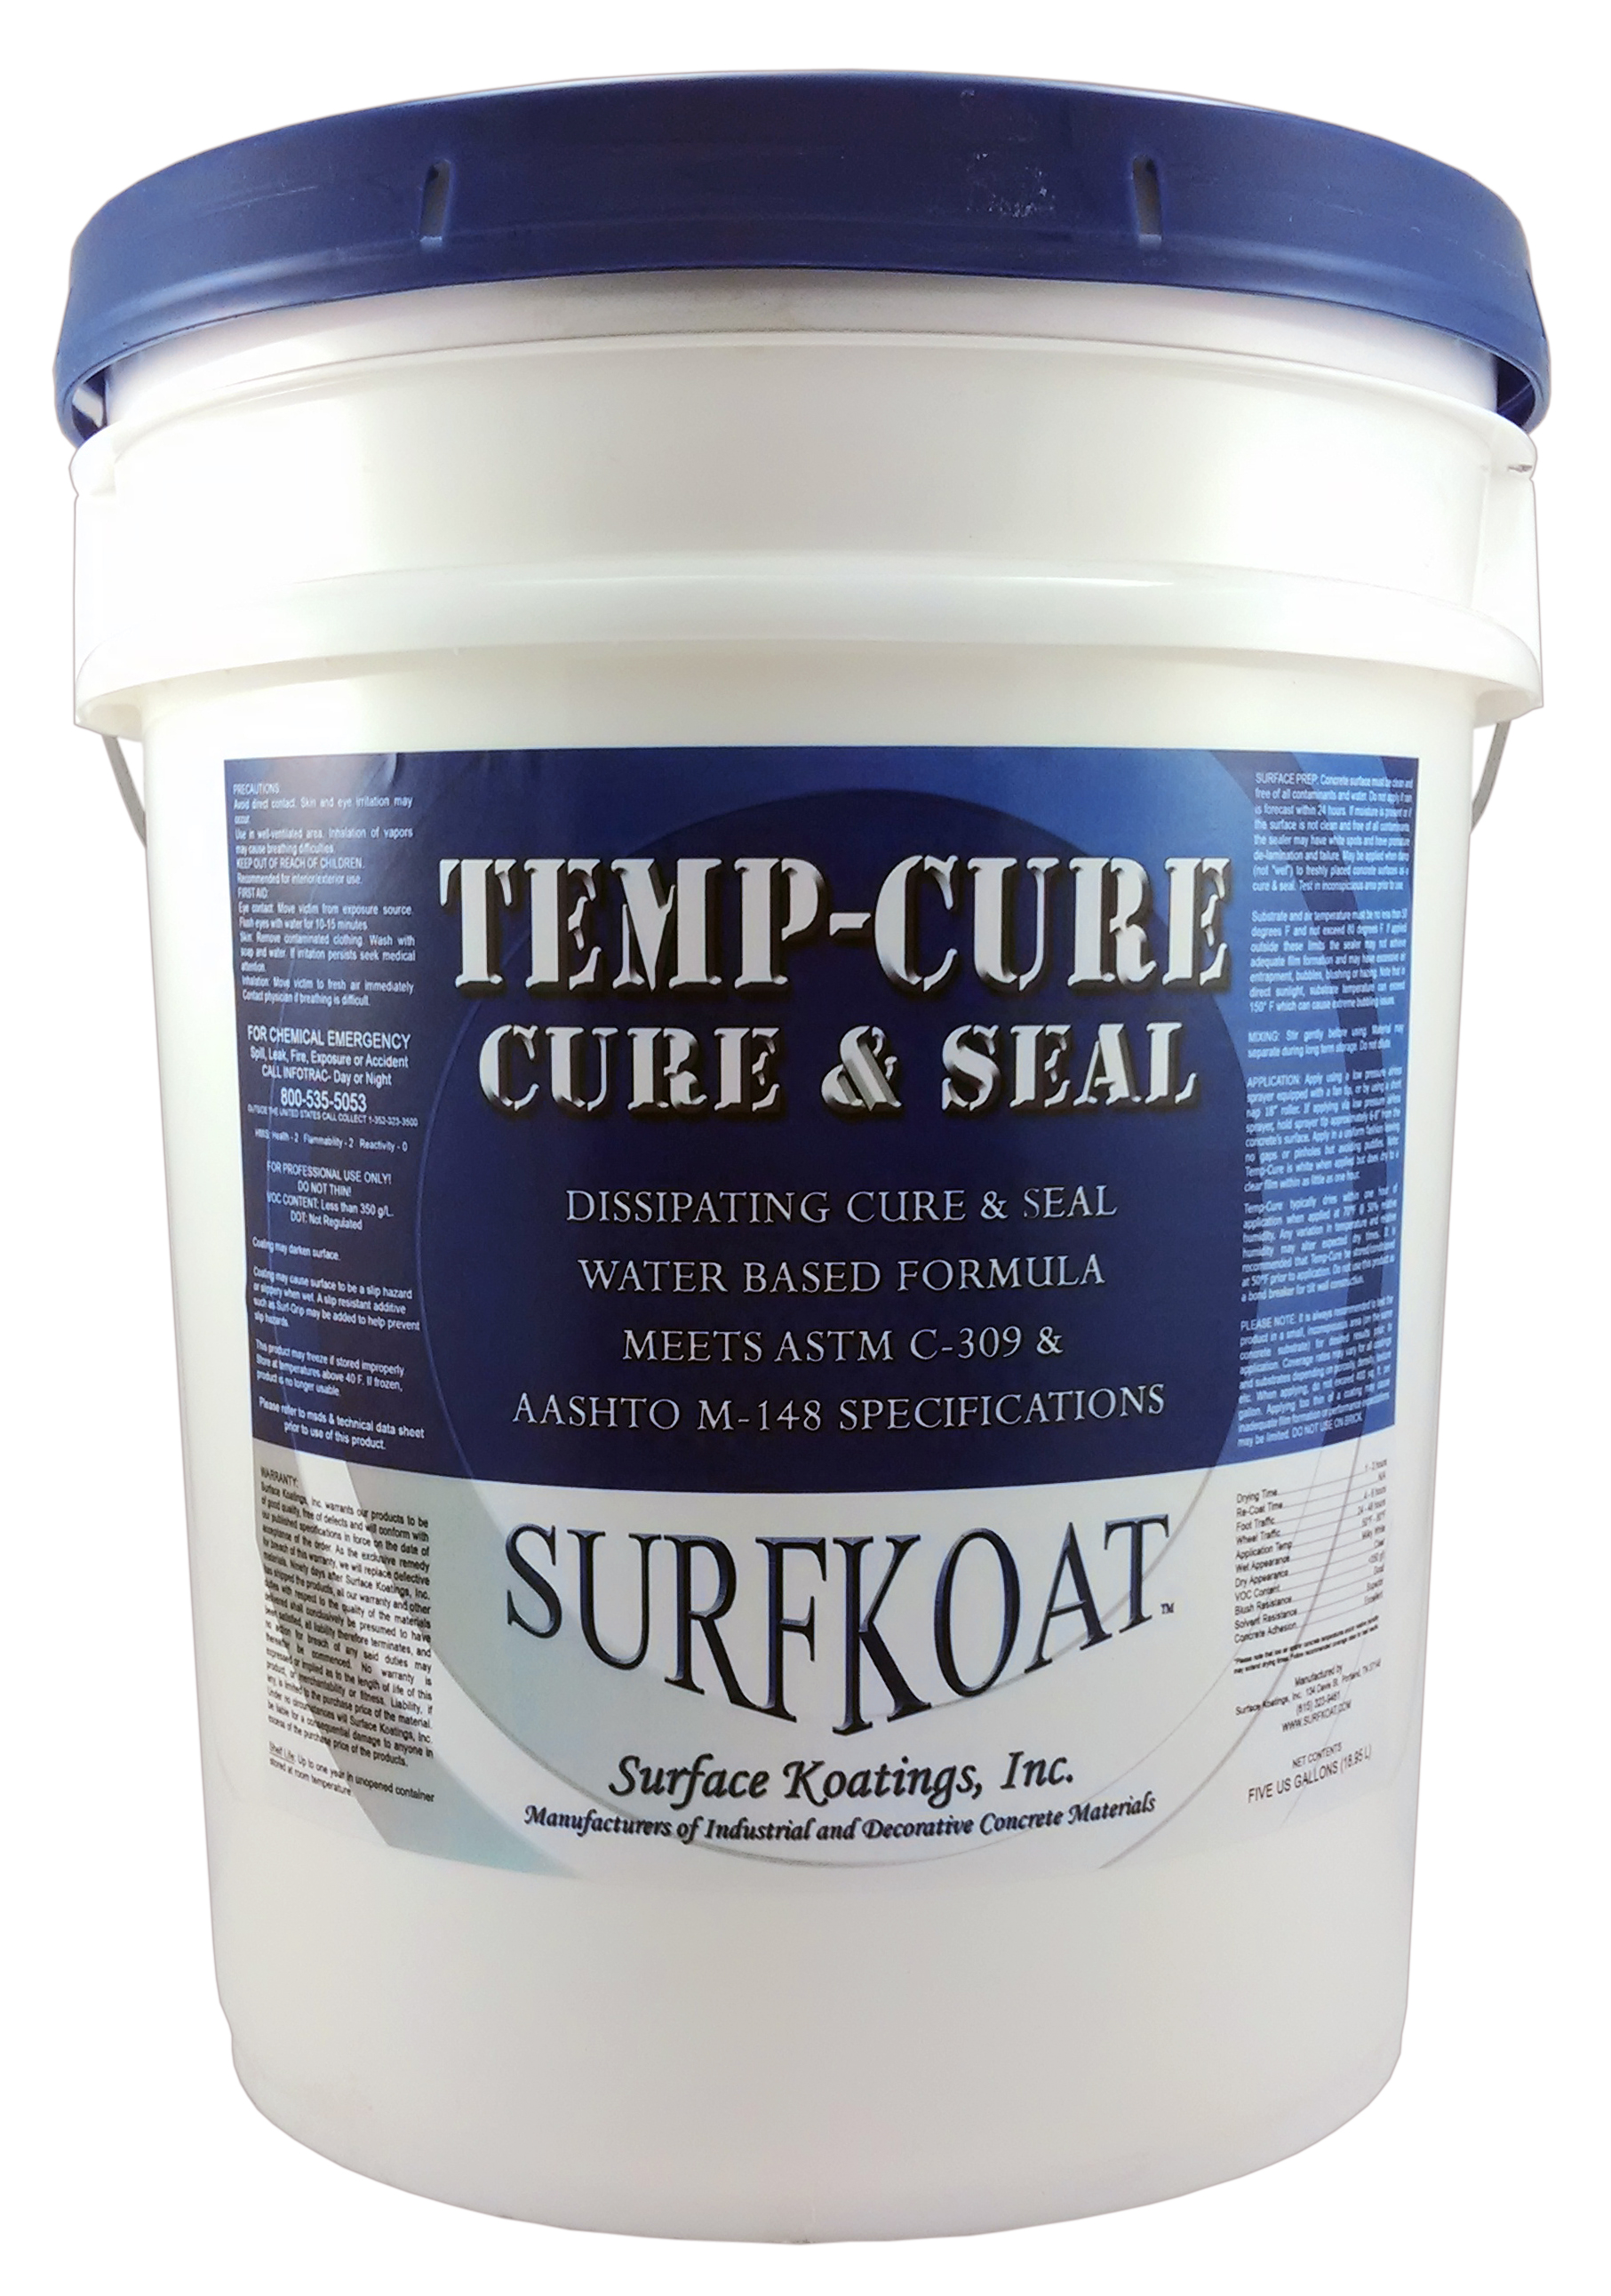 Surfkoat Com Announces Private Labeling For Dealers For